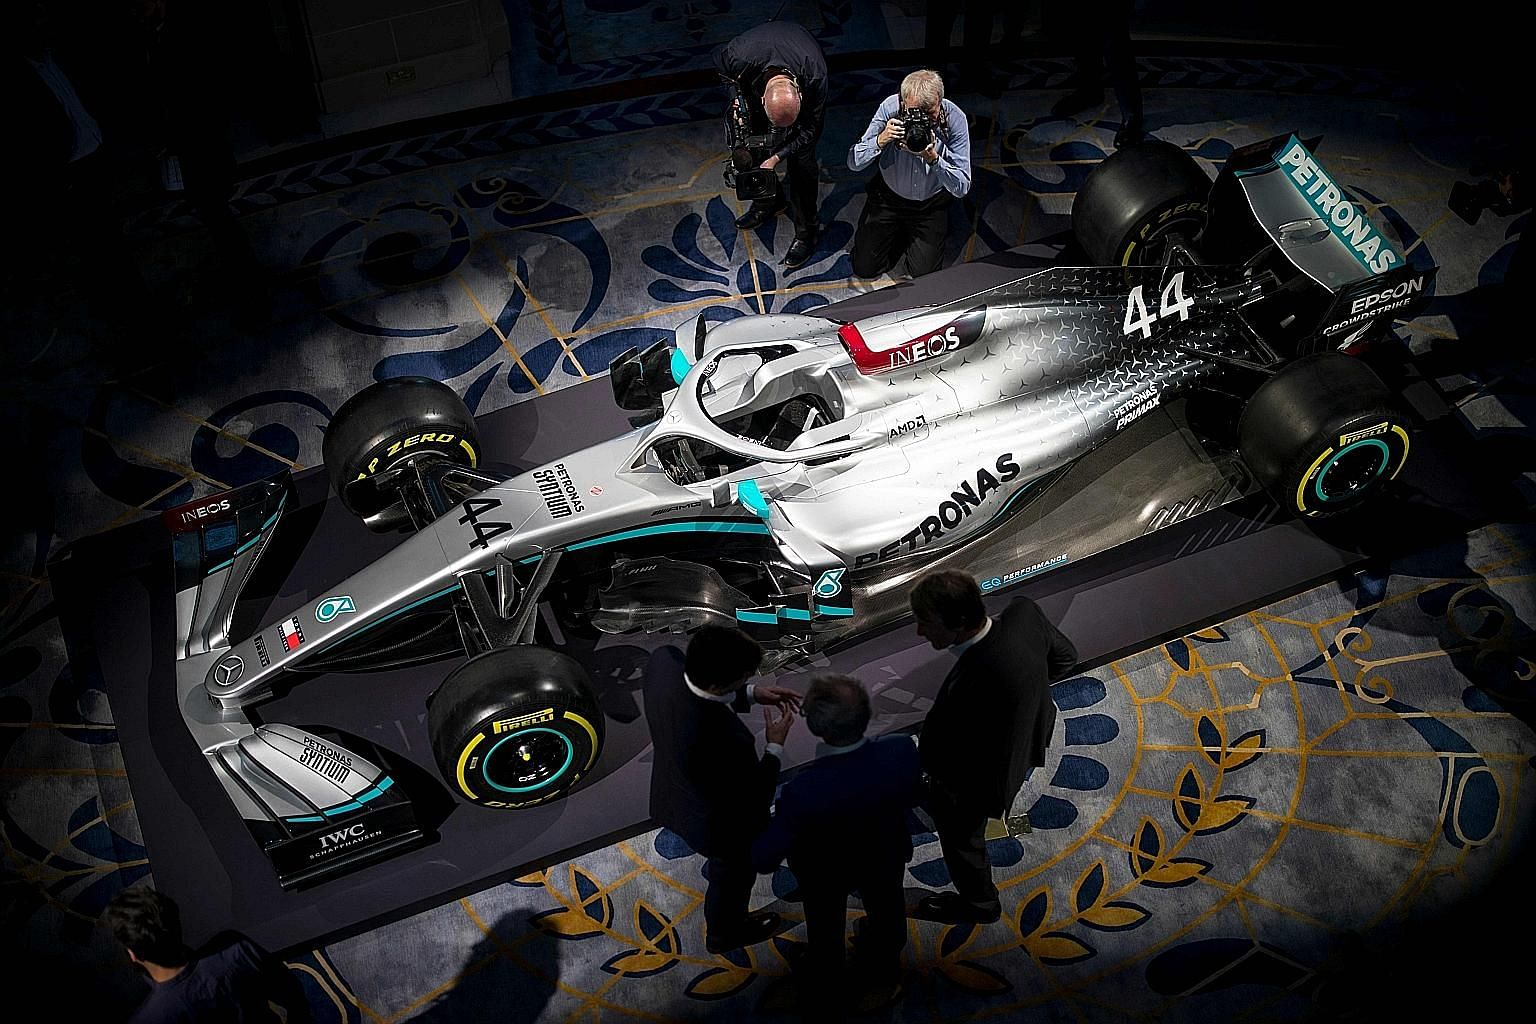 The new livery of Mercedes' 2020 Formula One car being unveiled at the Royal Automobile Club in London on Monday, when petrochemicals company Ineos was announced as a principal sponsor. The five-year deal is a statement of intent from a team who won